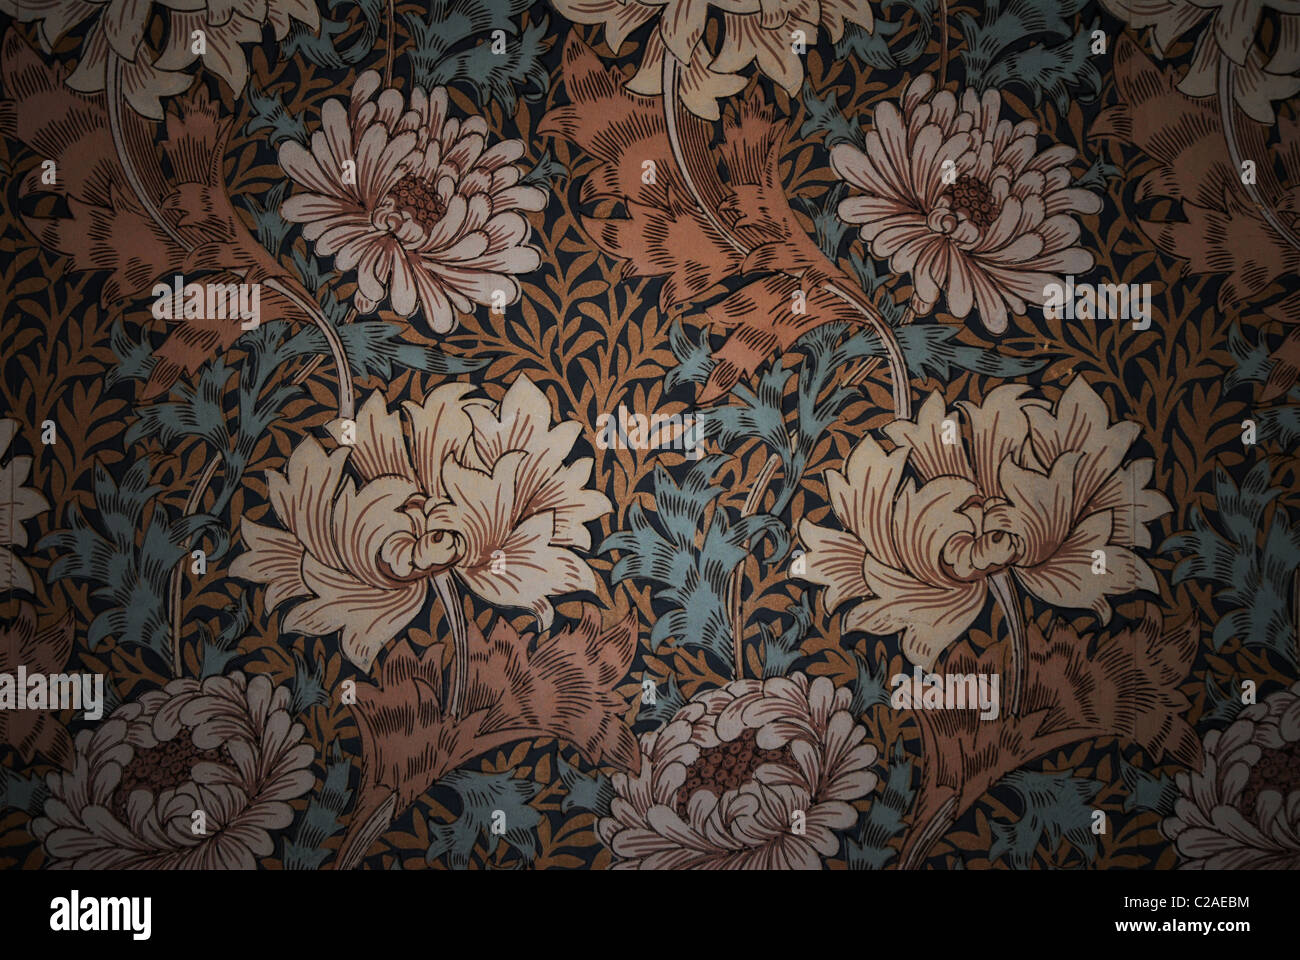 William Morris Stock Photos & William Morris Stock Images